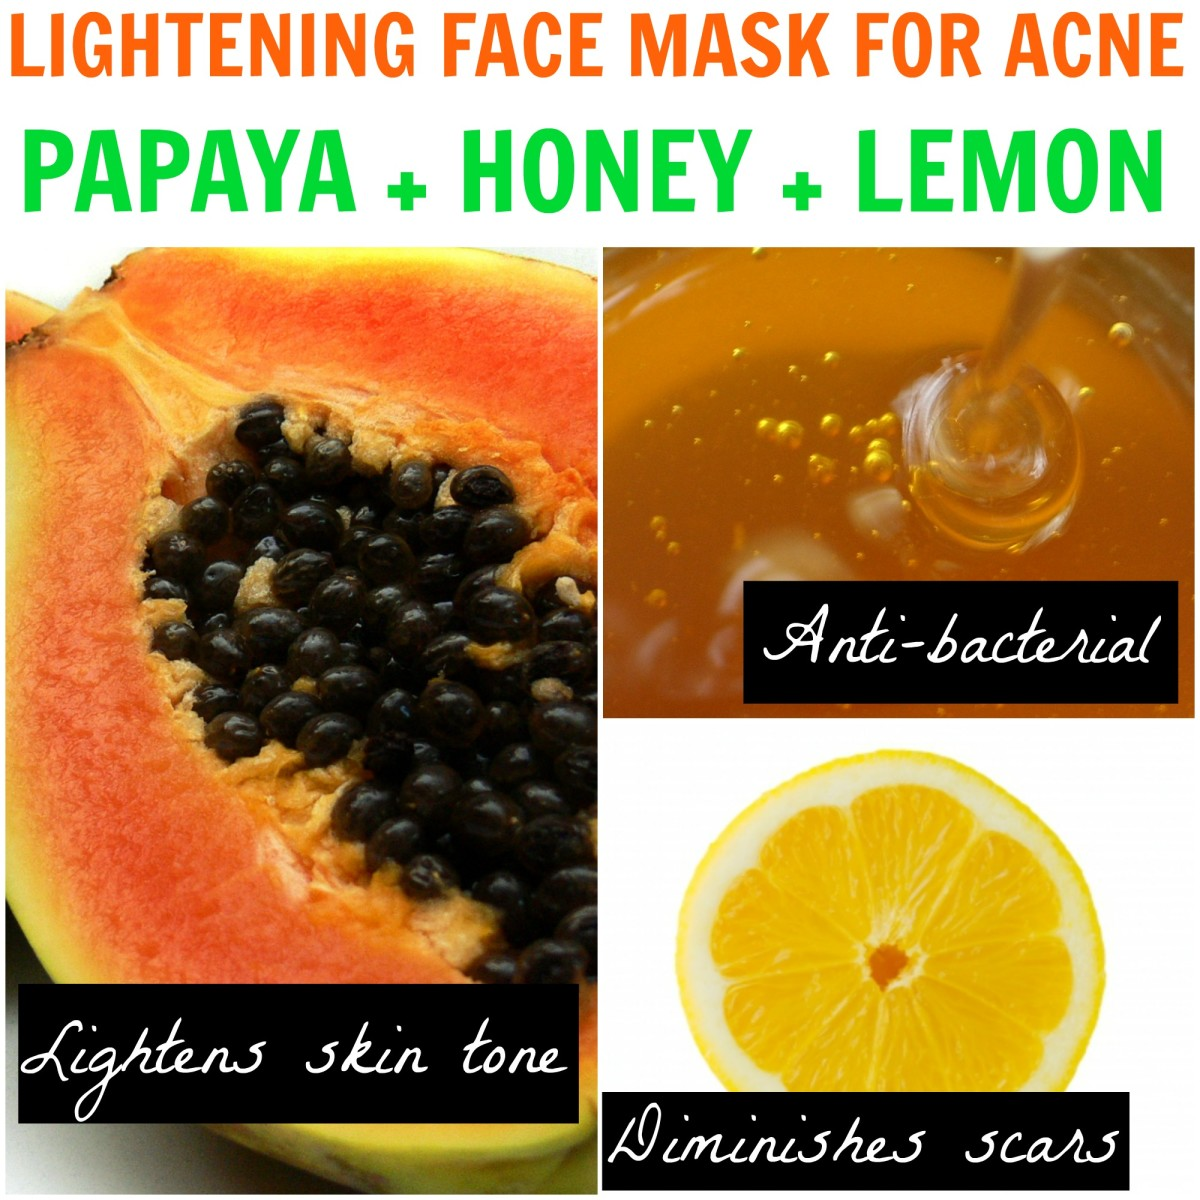 This papaya face mask is great for acne and also helps lighten and even out skin pigmentation. This is a powerful mask that can lighten scars as well, leaving you with bright, flawless skin.